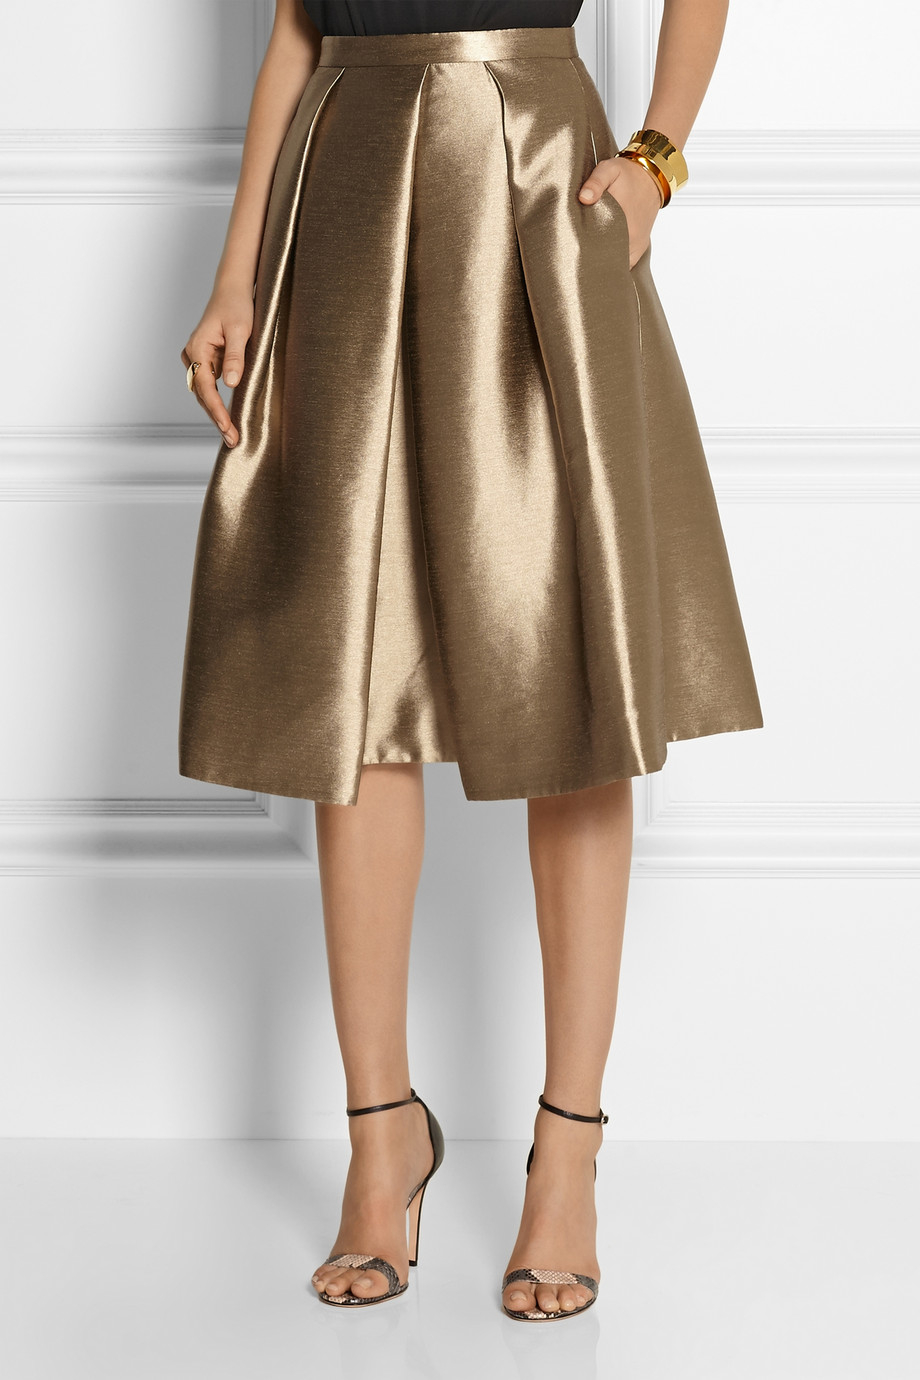 We feature gold skirts made in many different types of fabric, from gold lamé, to gold chiffon. Our gold skirts come in a wide variety of styles and are sized to fit all body types. Our gold shirts come in mini, midi and maxi lengths, providing you with many choices, and a good deal of variety.